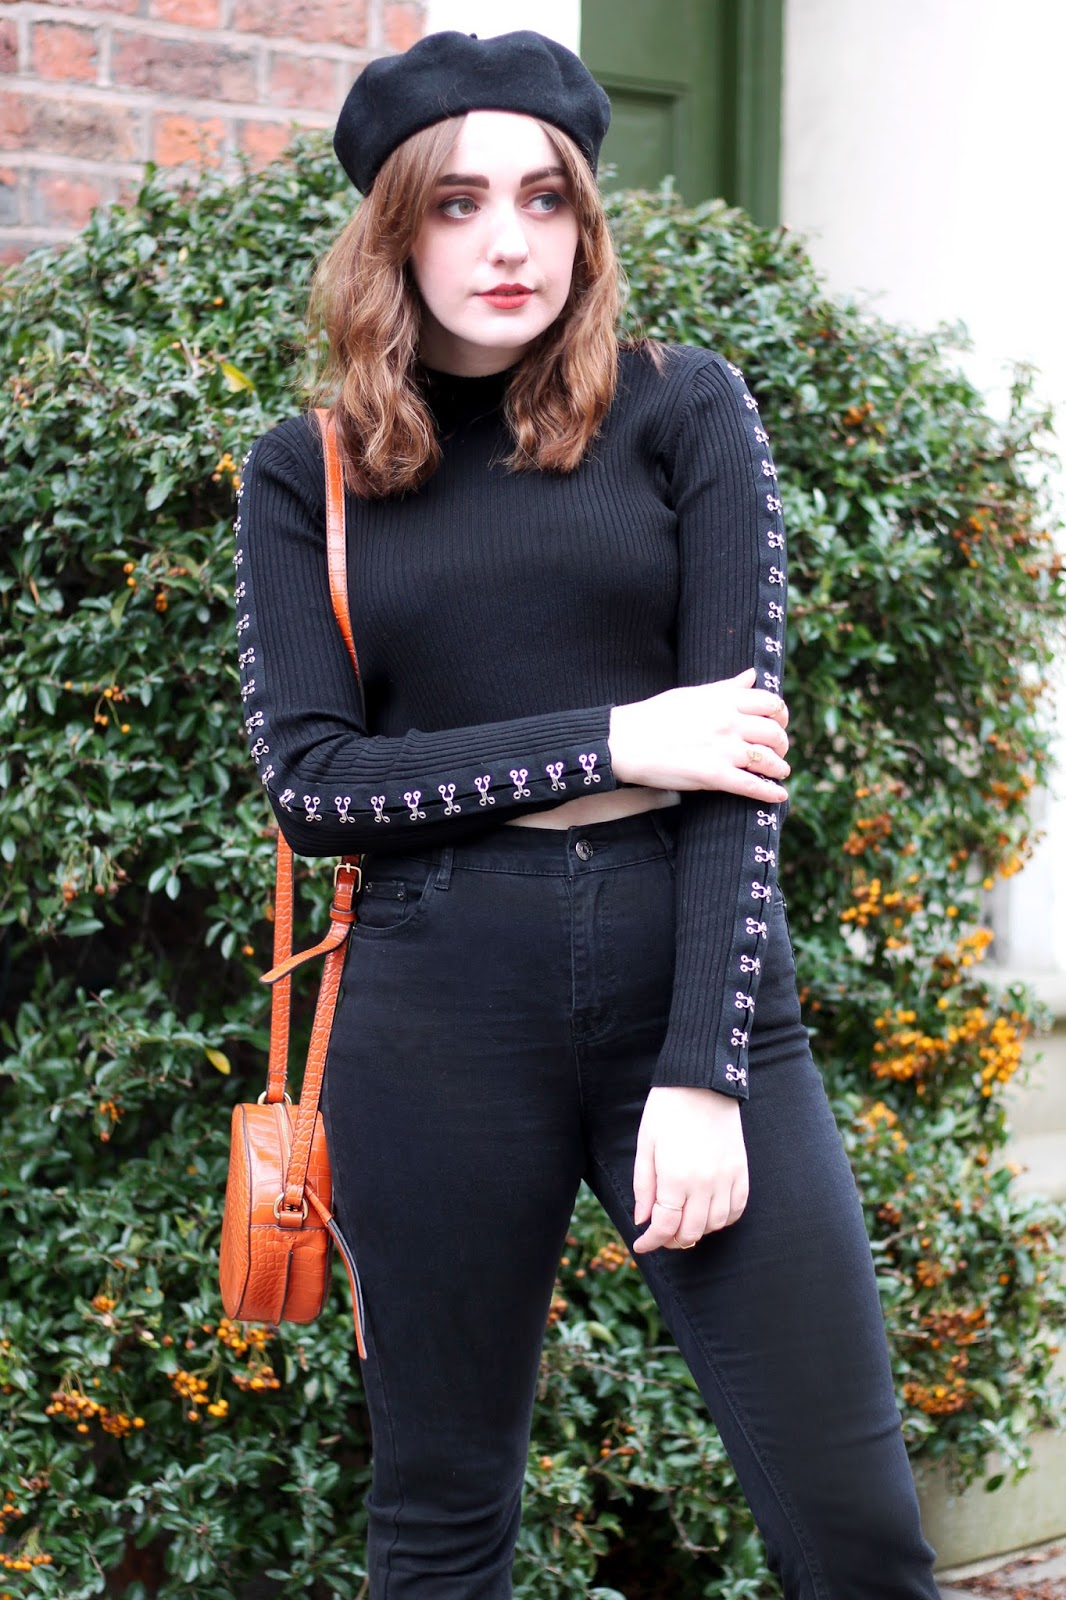 black beret, black top with hook and eye detailing, black kick flare jeans, orange circle bag